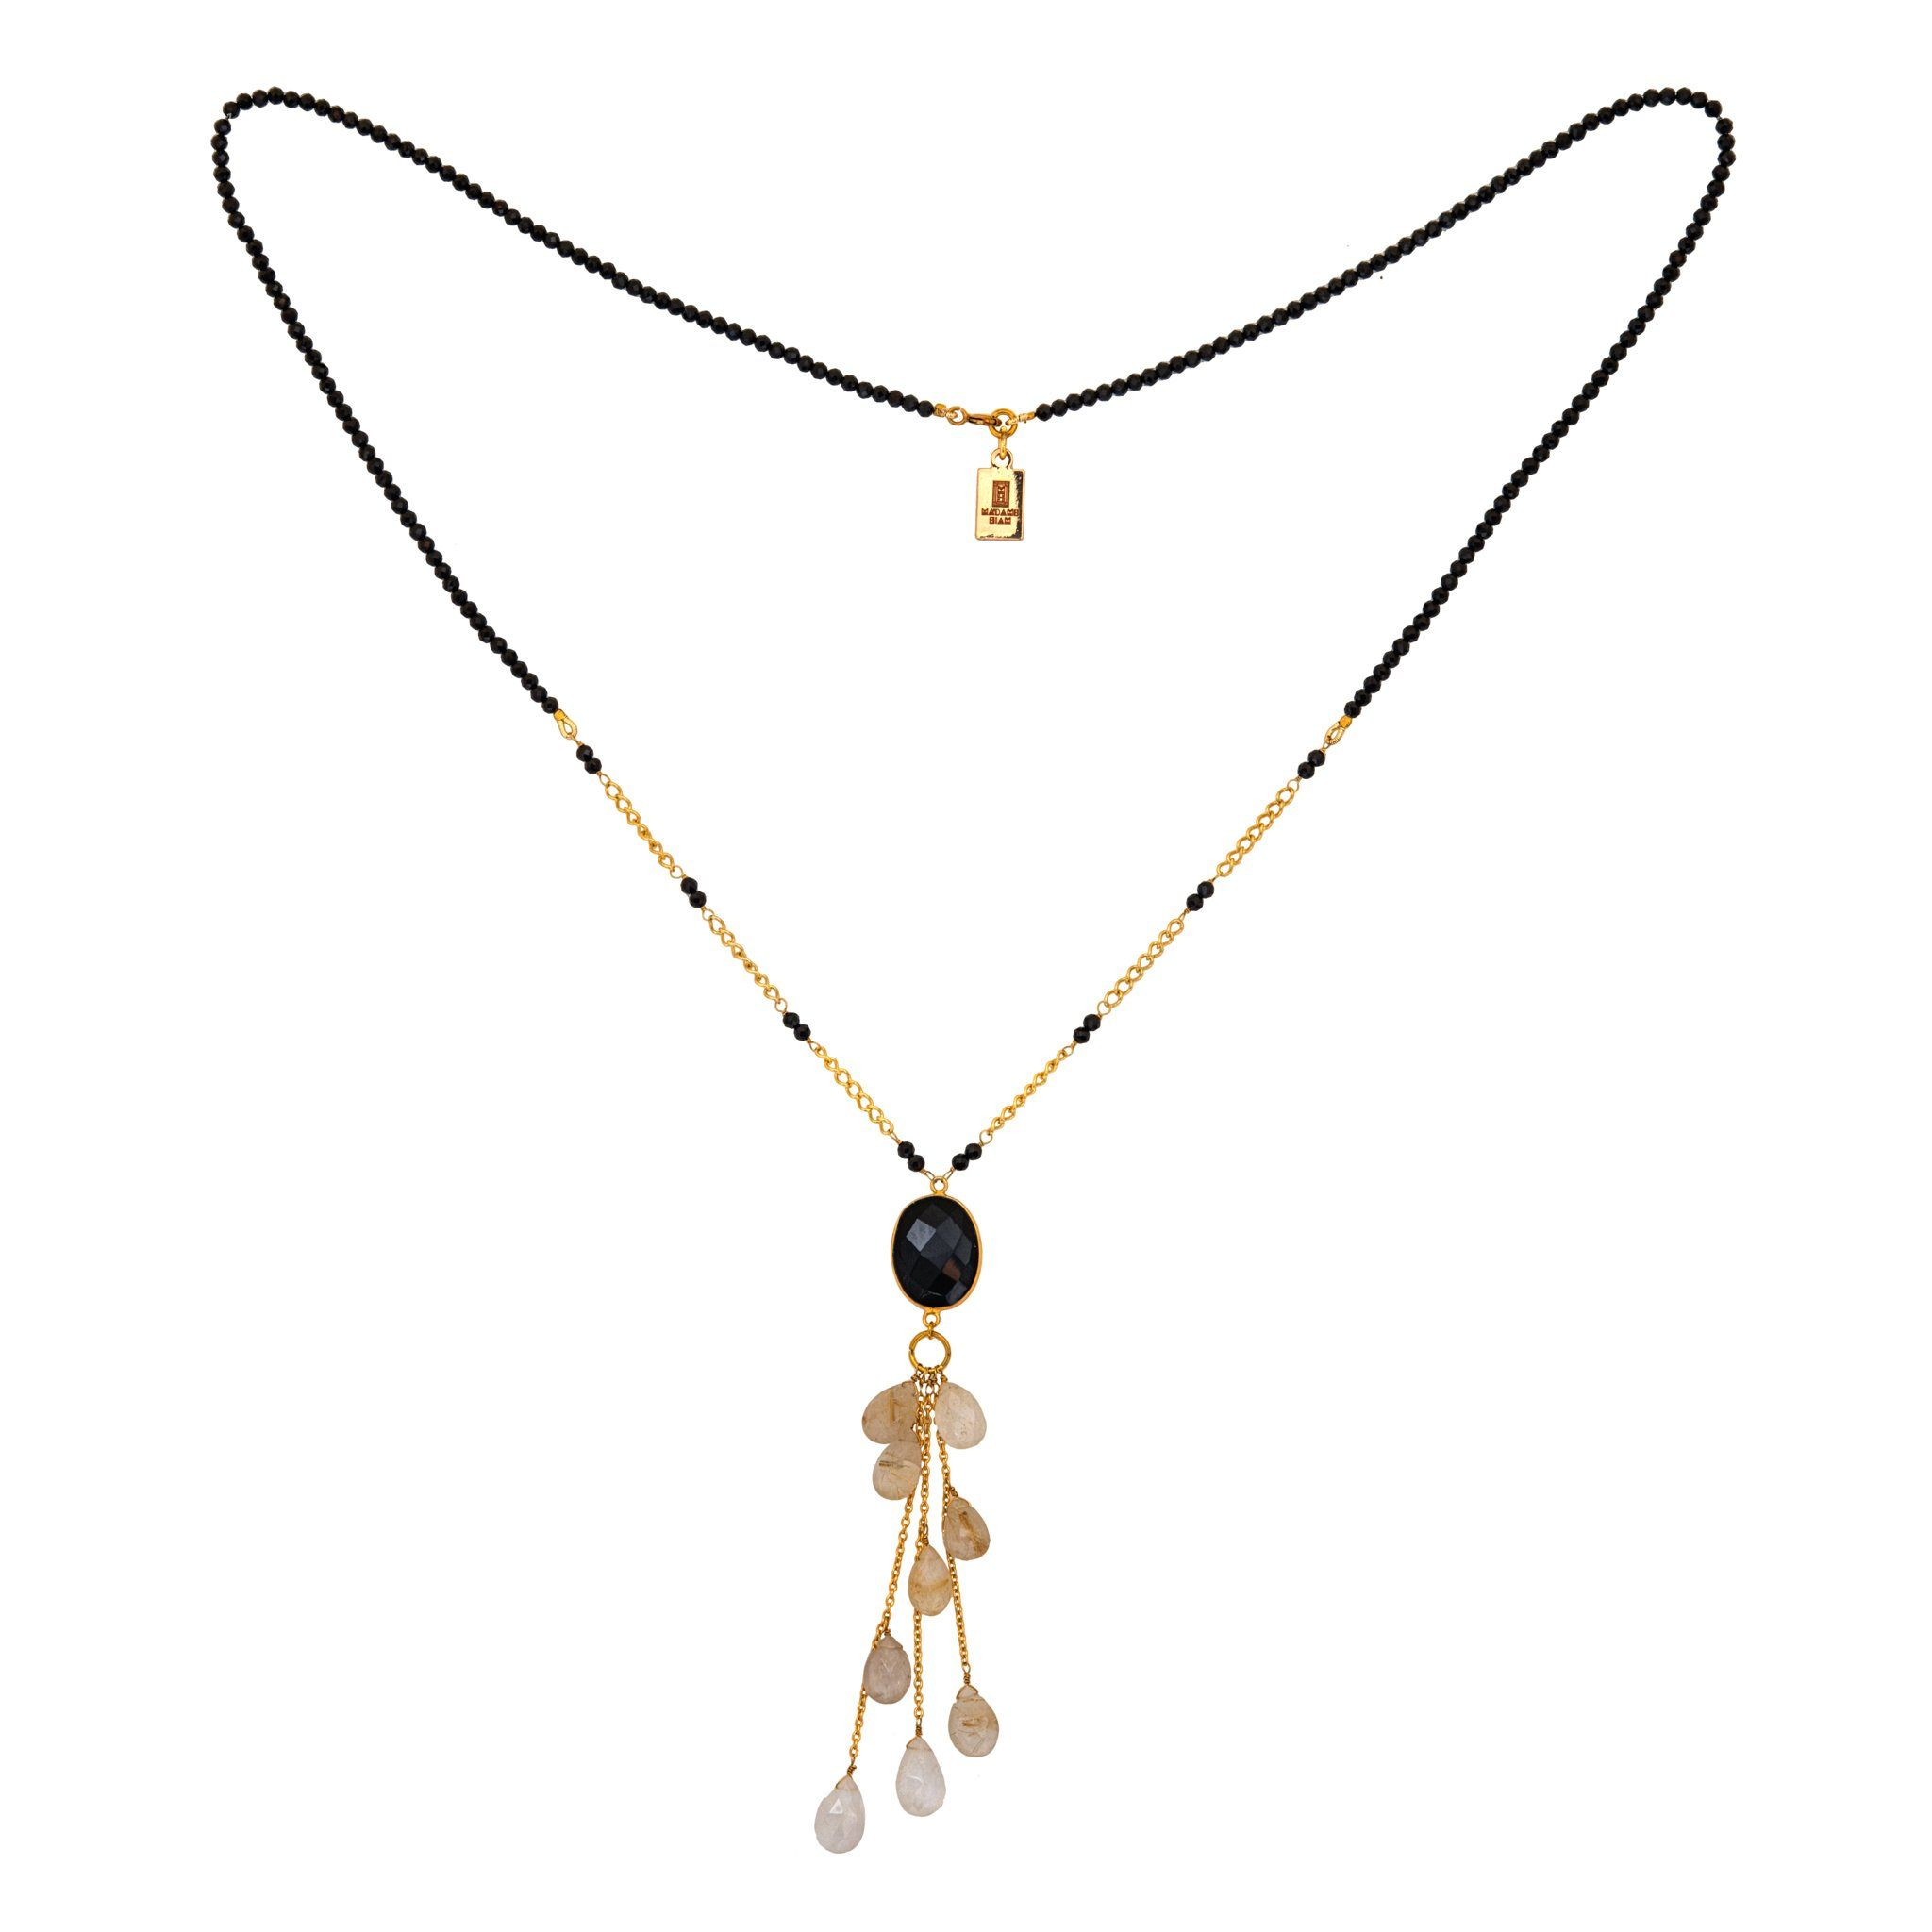 LUZ black onyx long necklace with rutile drops